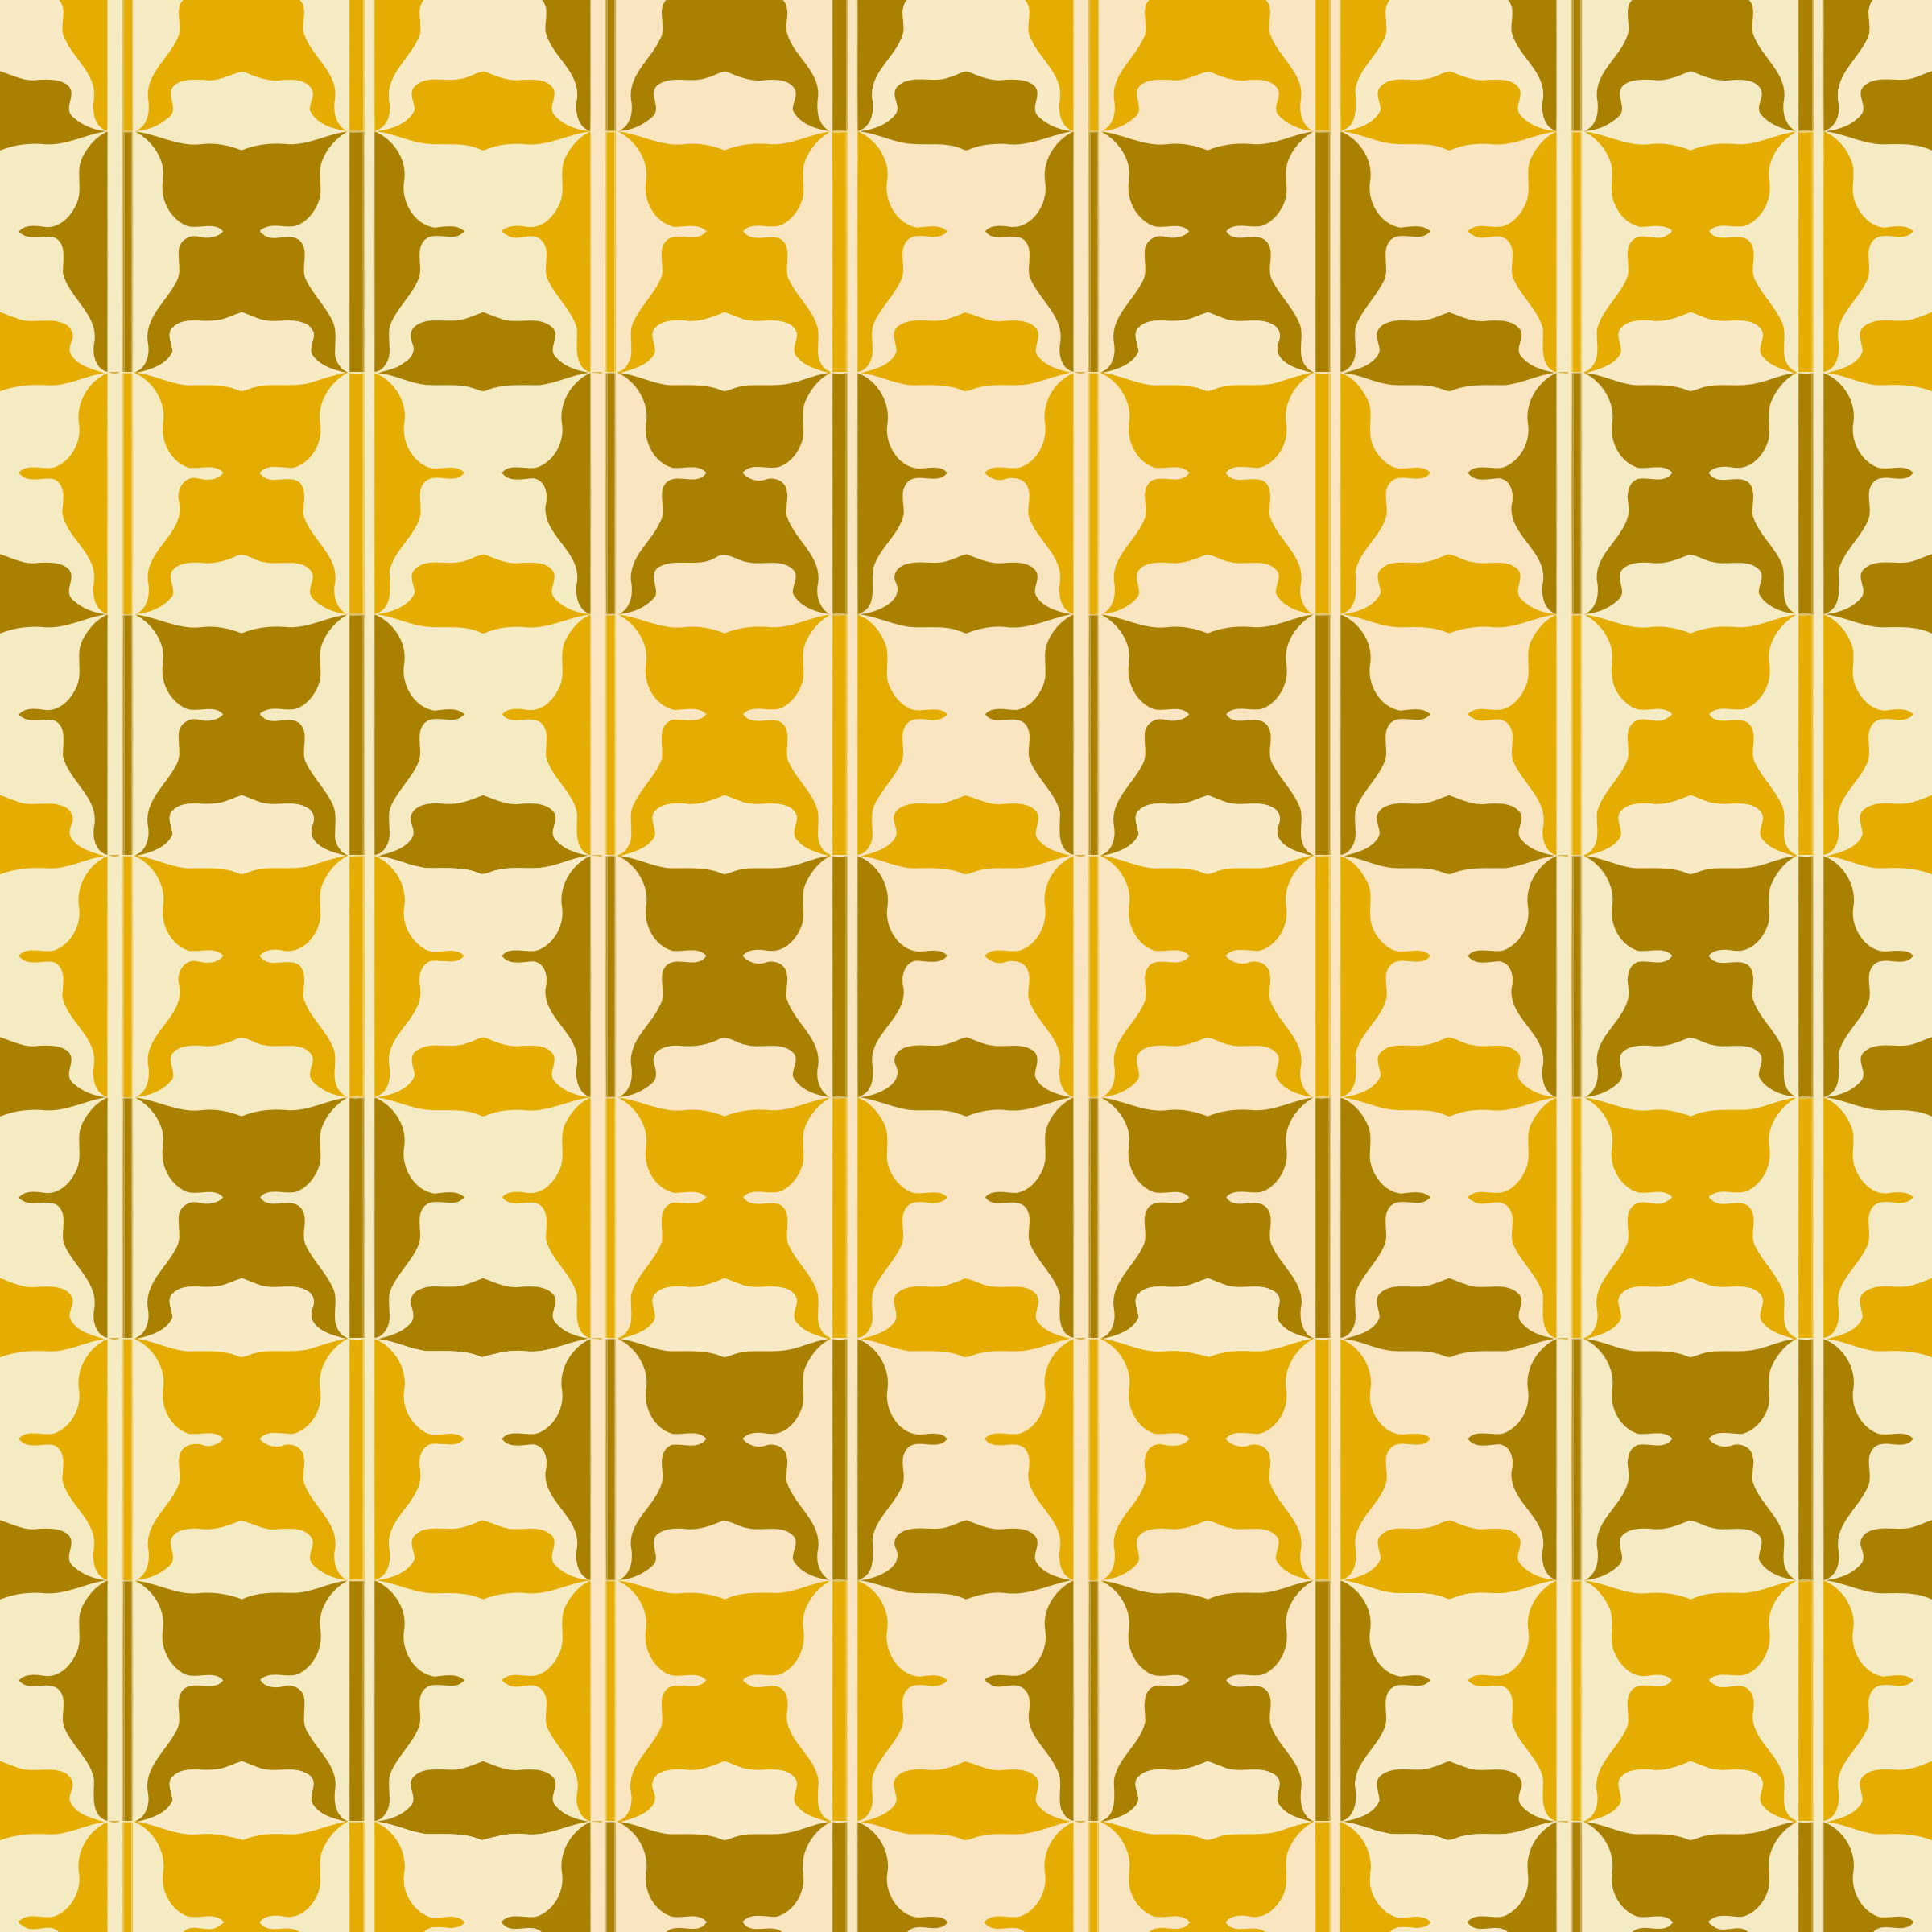 Background pattern 27 (colour) by Firkin